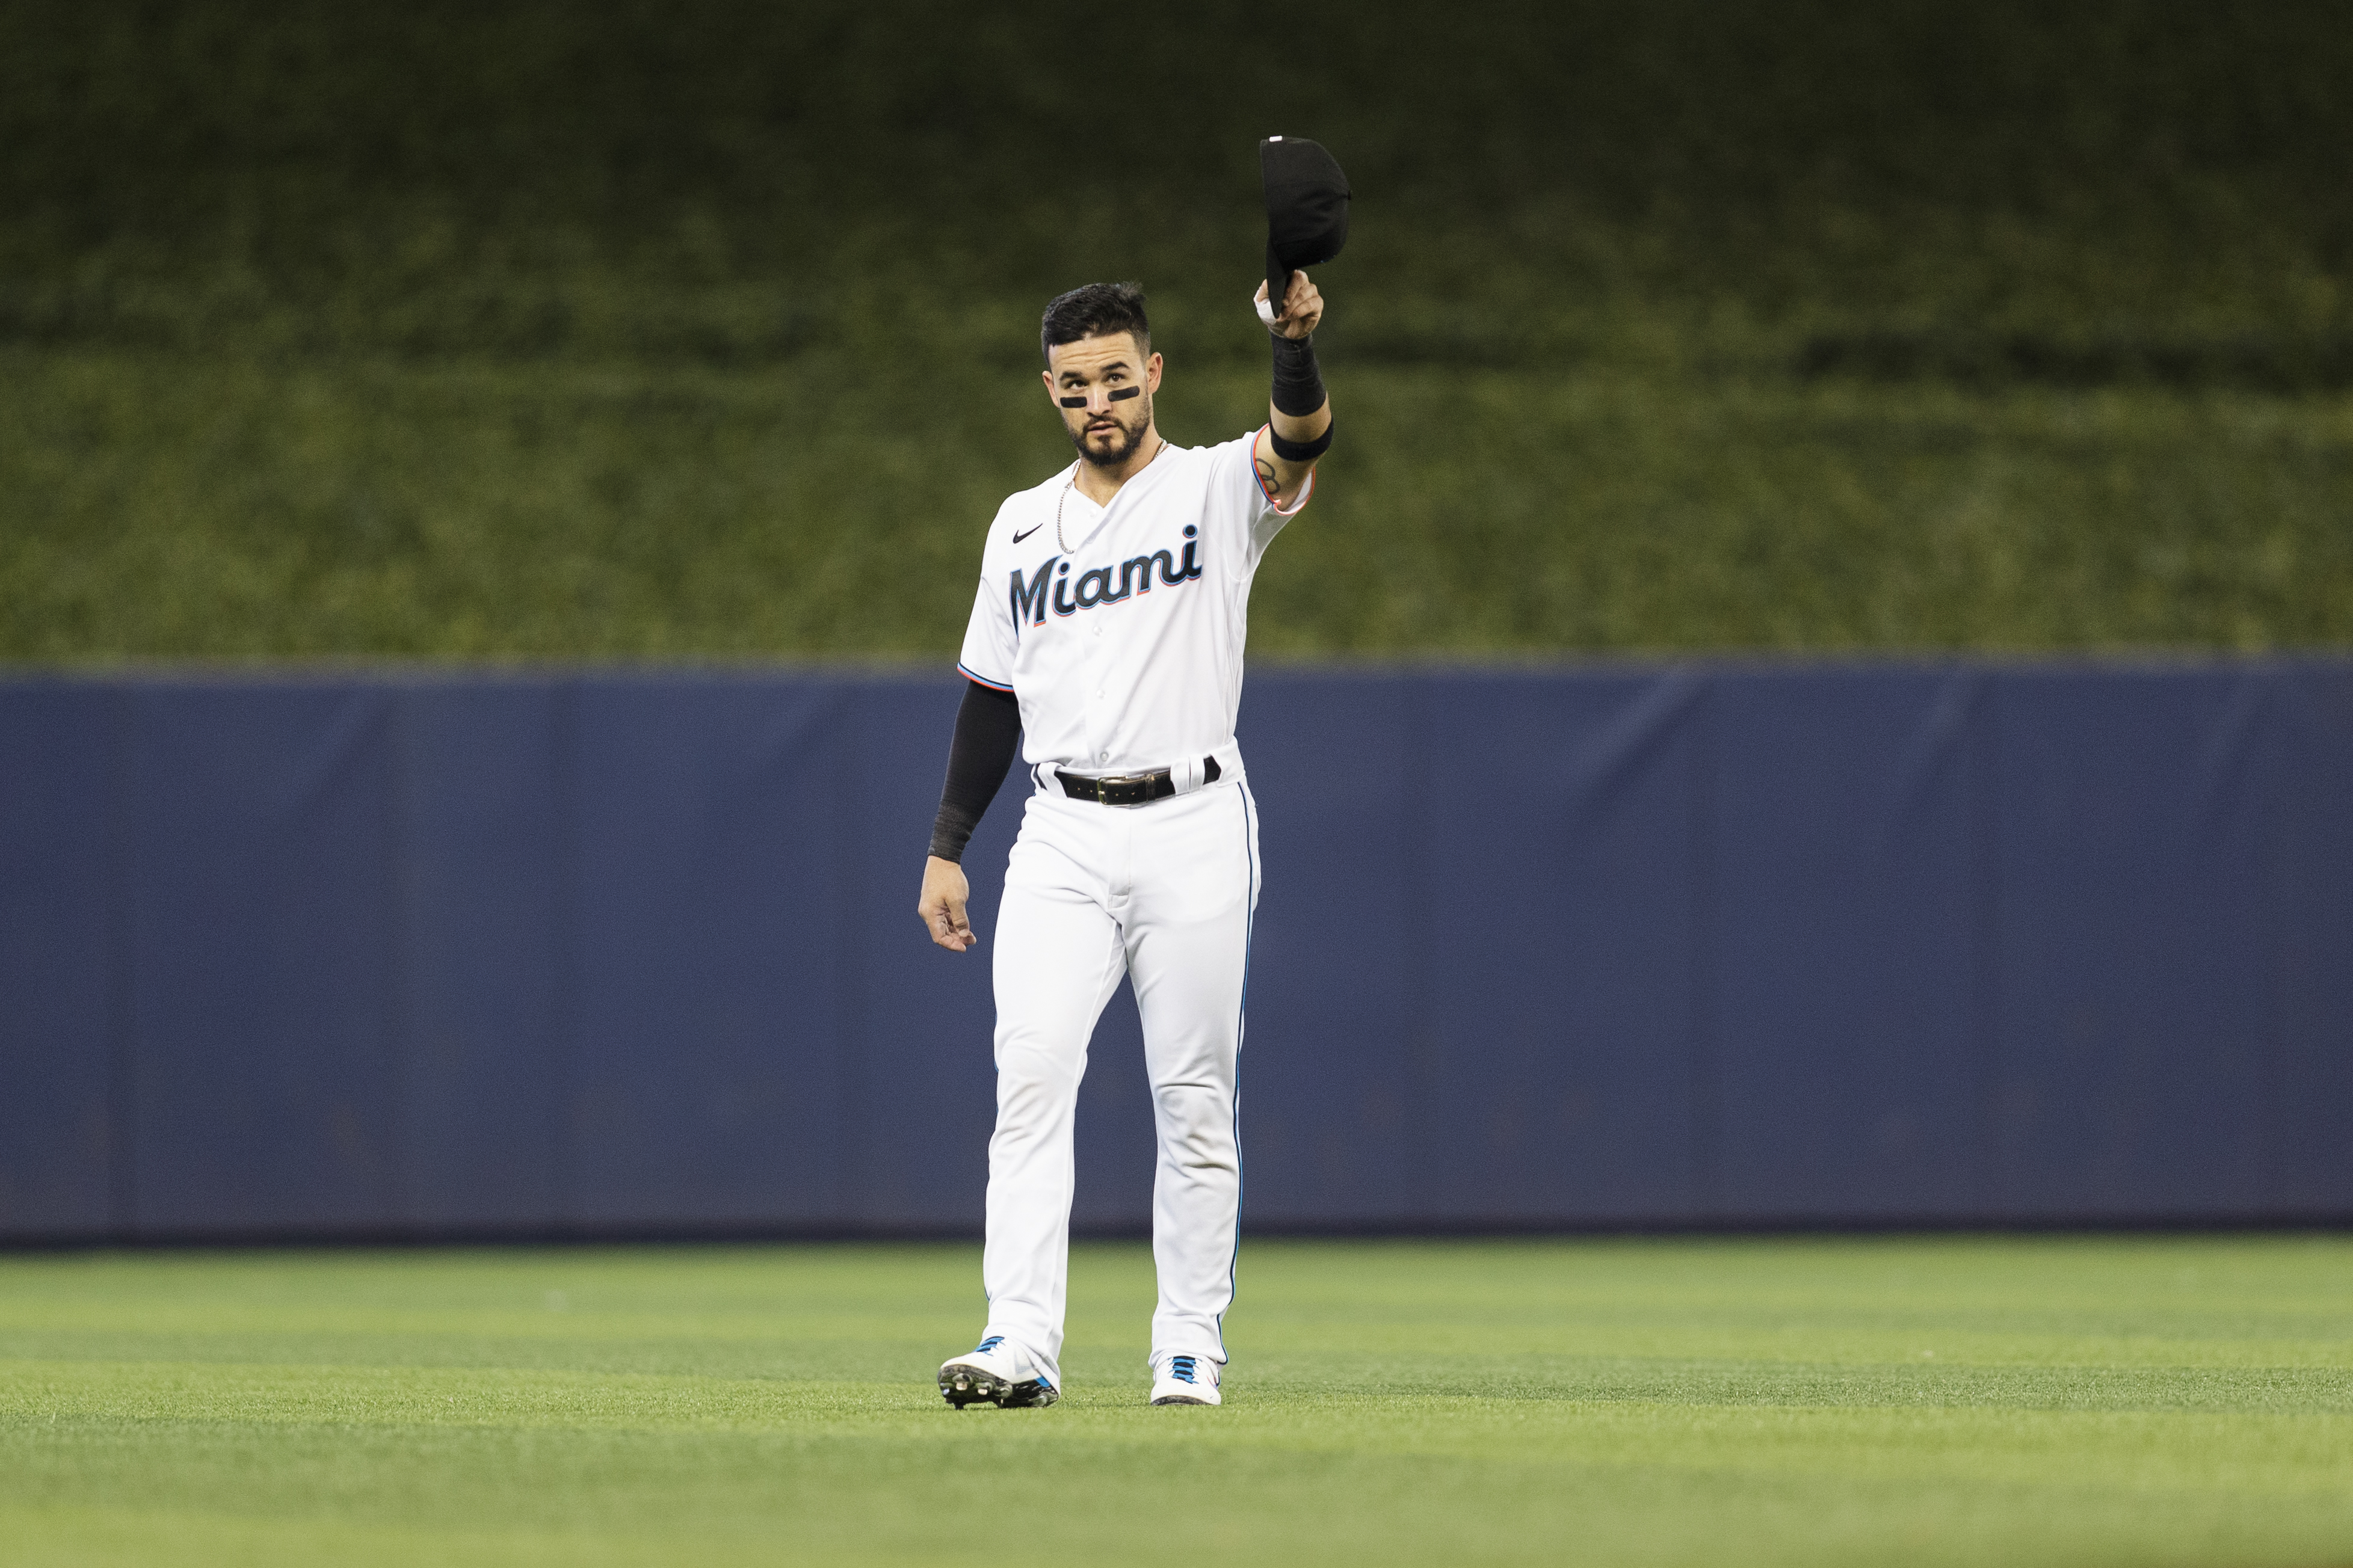 Eddy Alvarez #65 of the Miami Marlins salutes fans before the start of the game against the Pittsburgh Pirates at loanDepot park